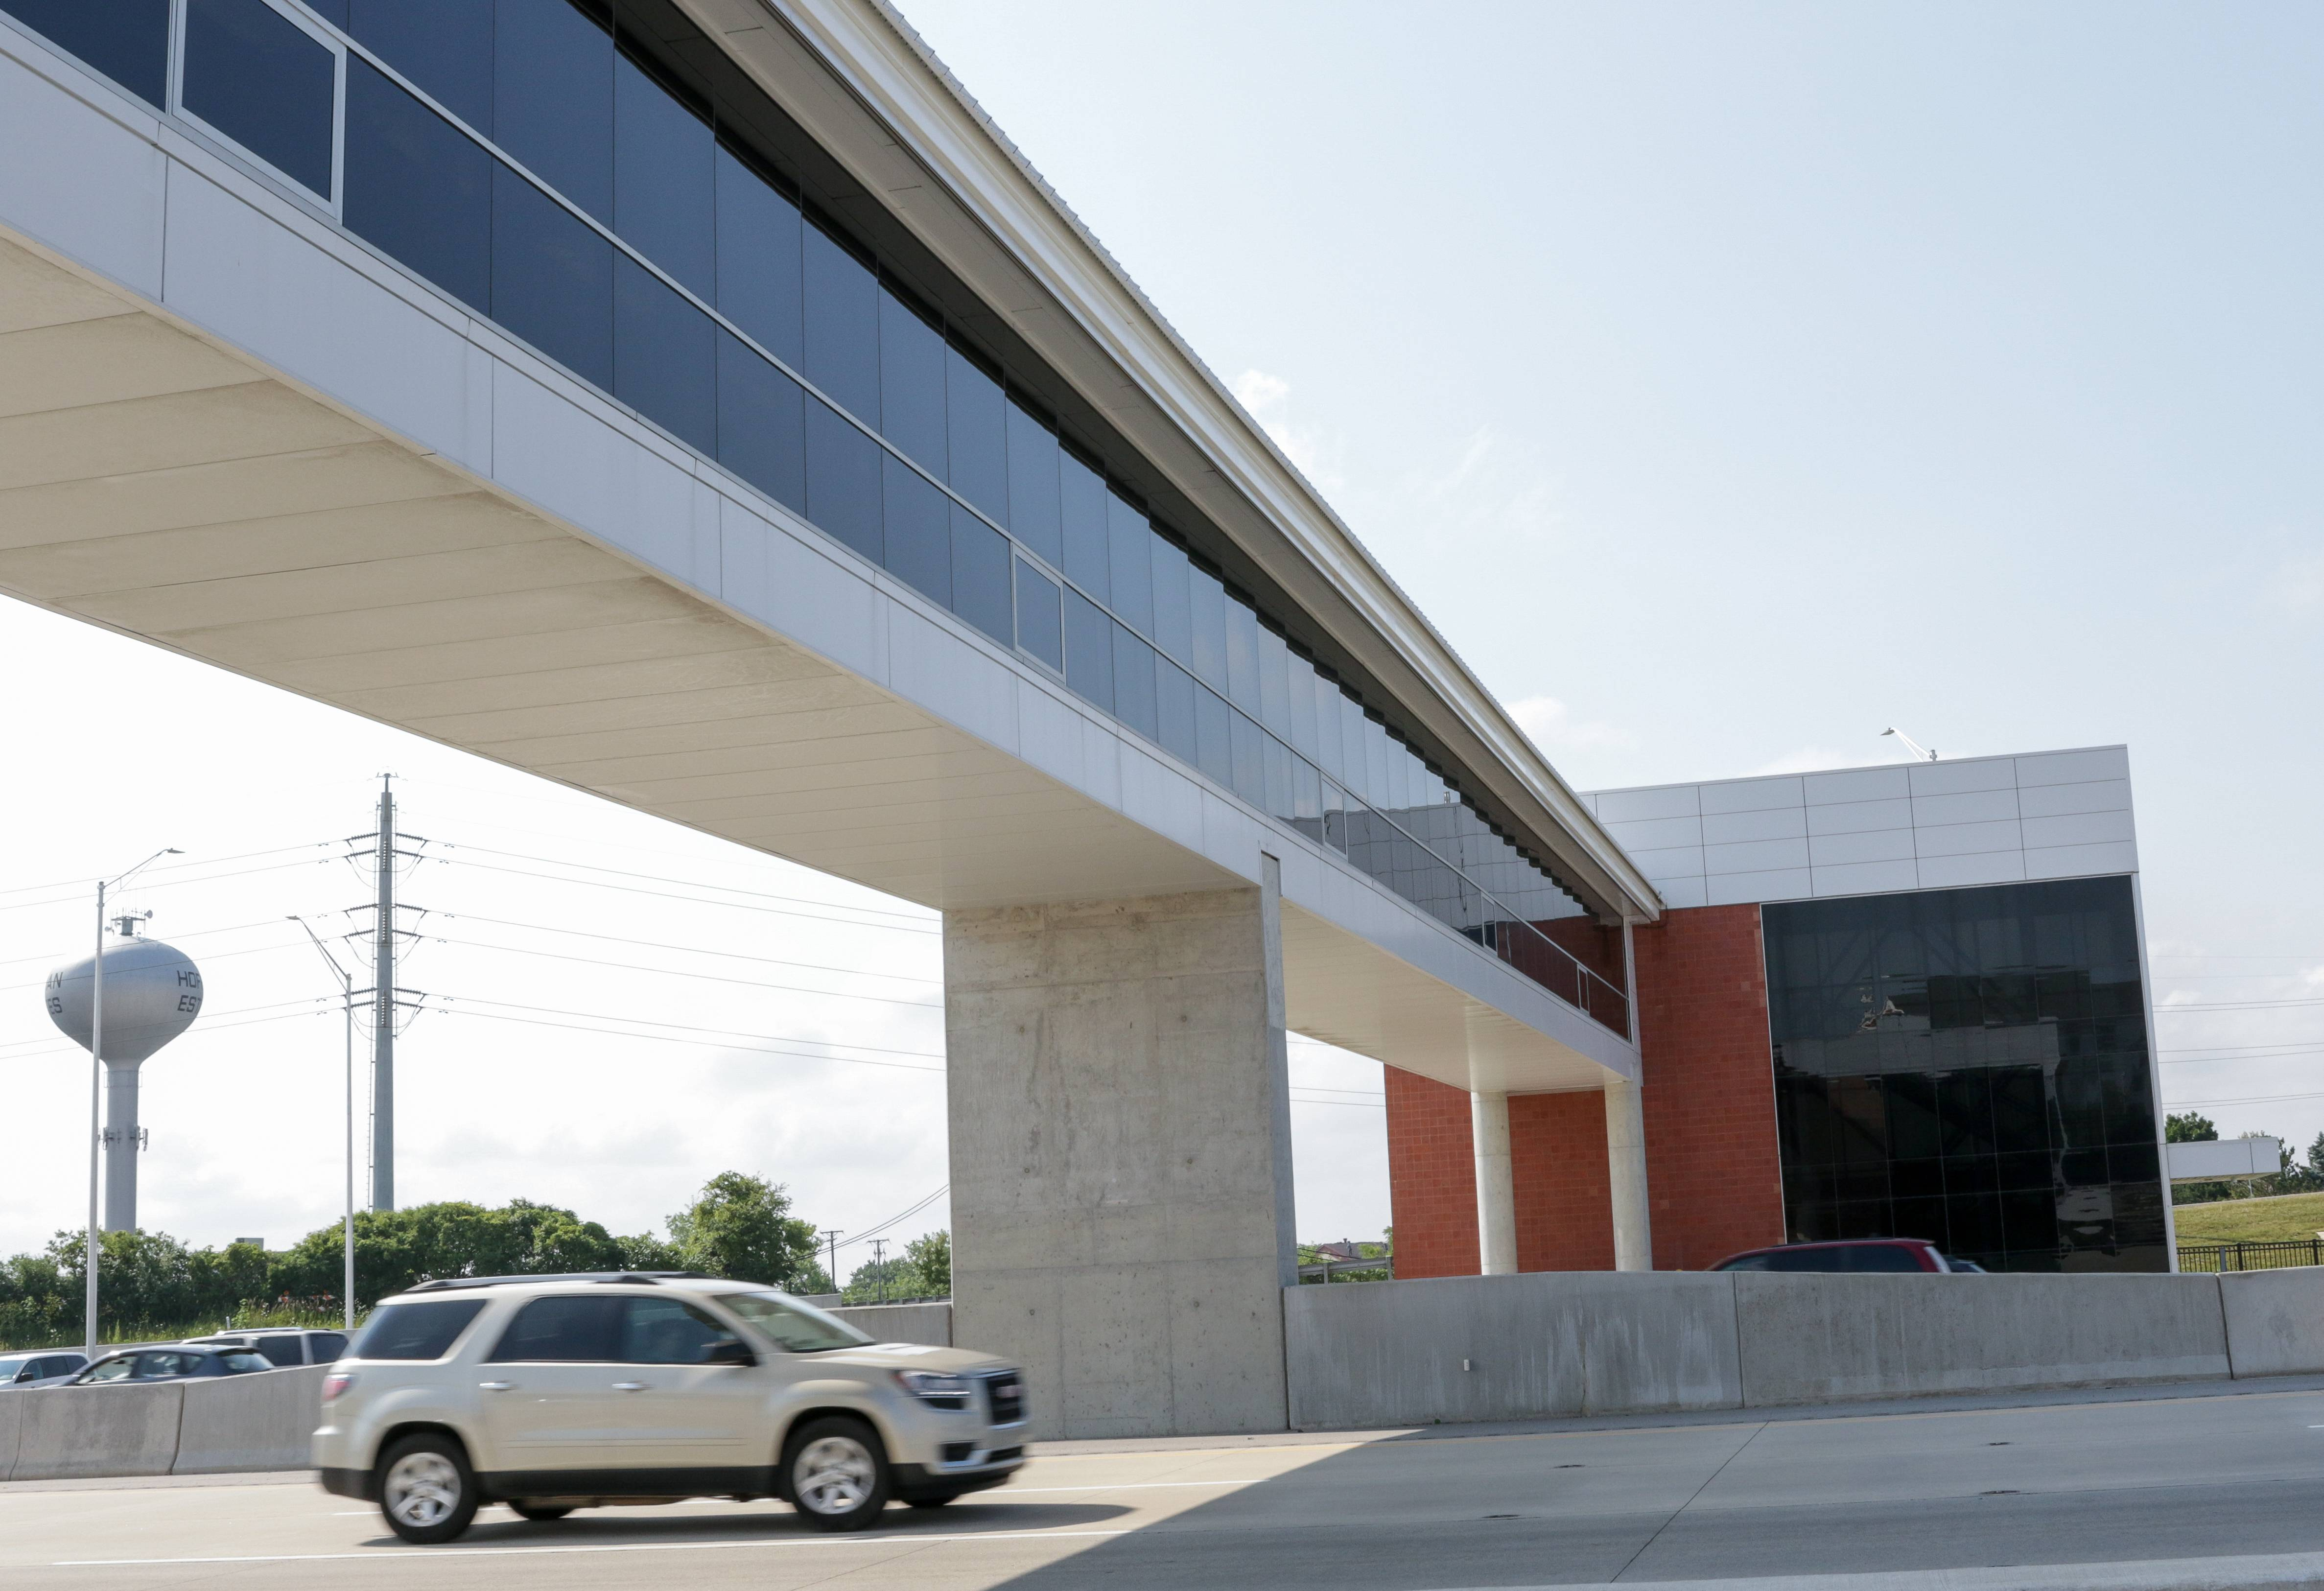 Pace and the Illinois tollway held a press preview Friday for a new transit station that will open Monday at I-90 and Barrington Road. A pedestrian bridge connects parking lots to the bus boarding lane.